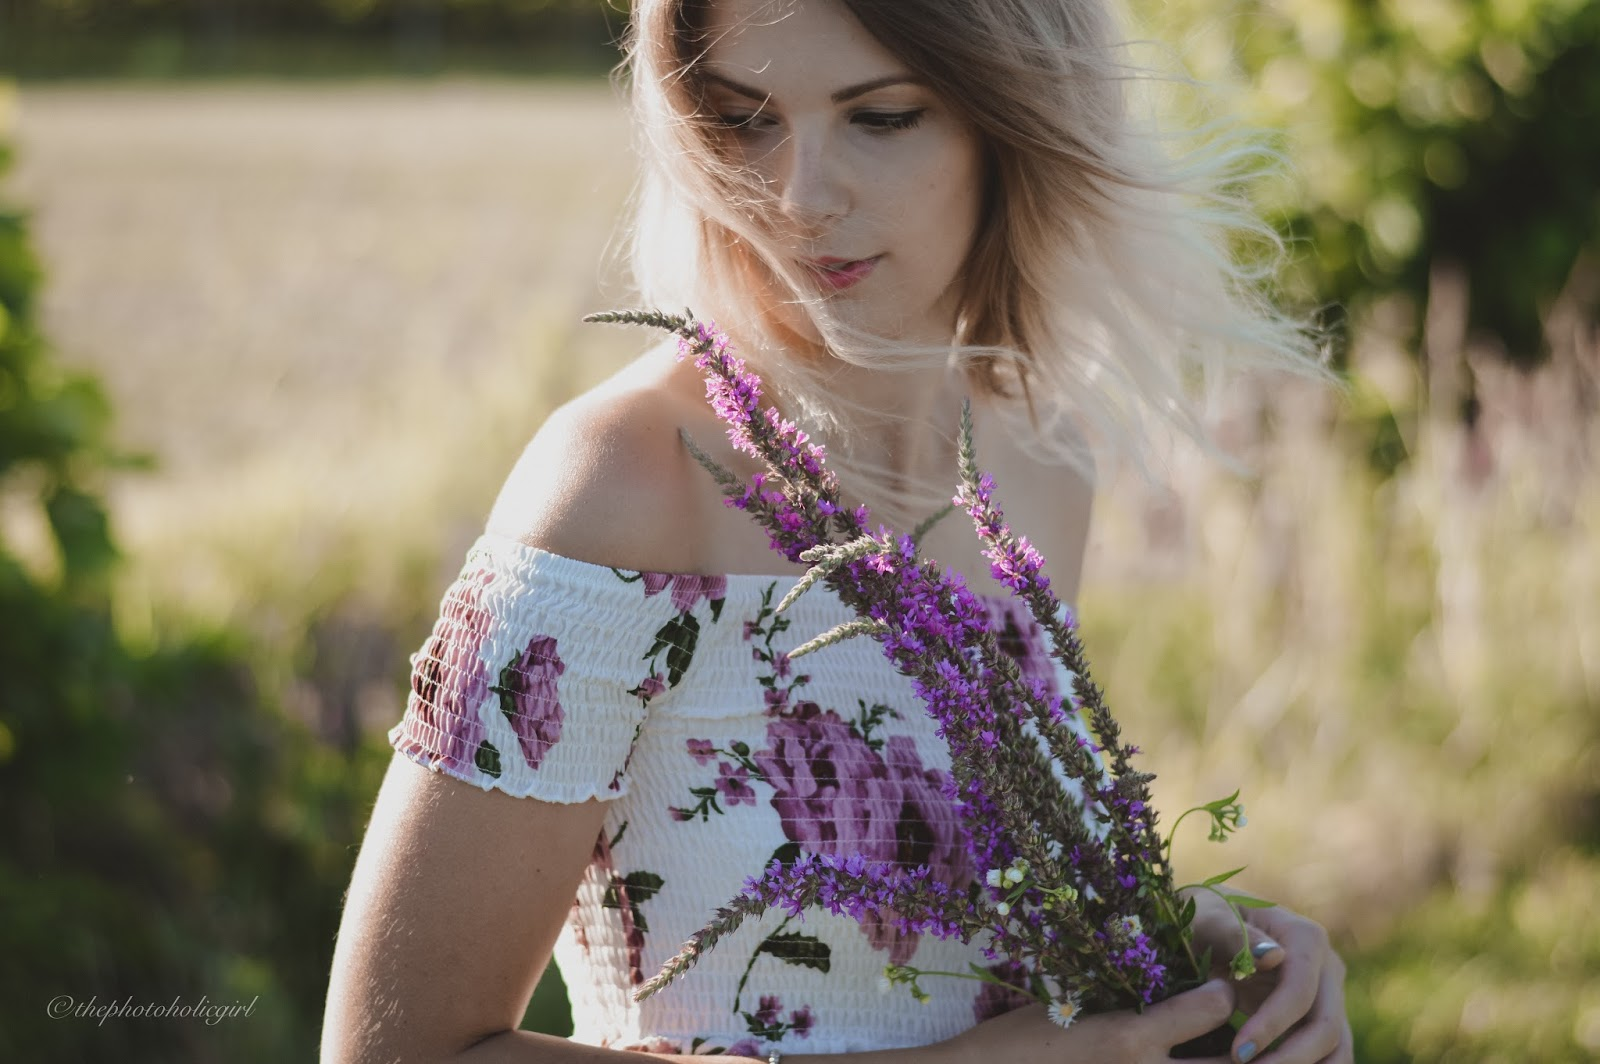 campo spanish girl personals Download our free app to connect with jewish singles and find your beshert   we make it easy to connect with nice jewish boys or girls by logging in with your .